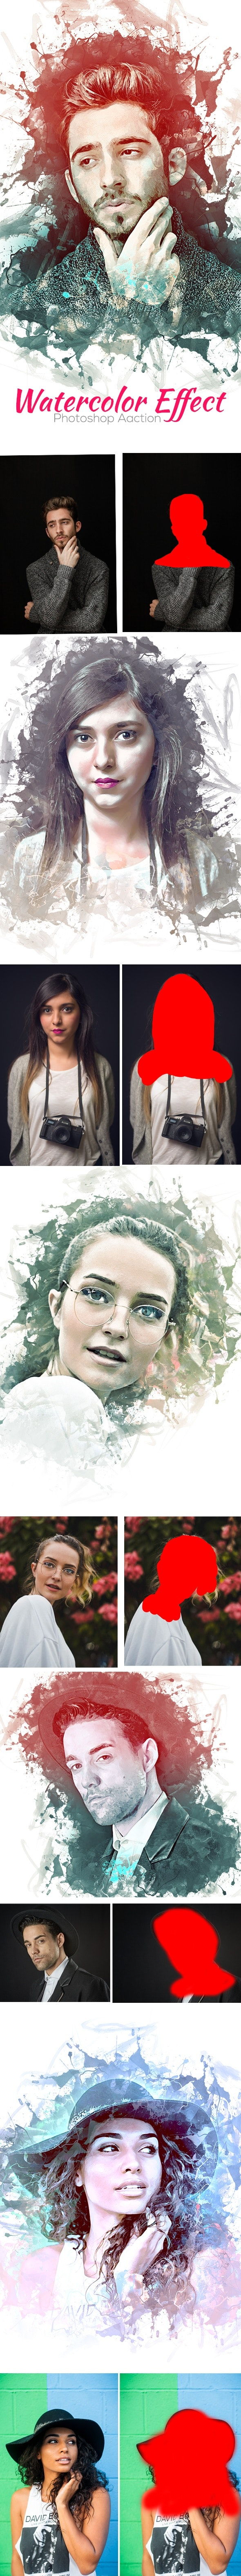 Watercolor Effect Photoshop Action - Actions Photoshop